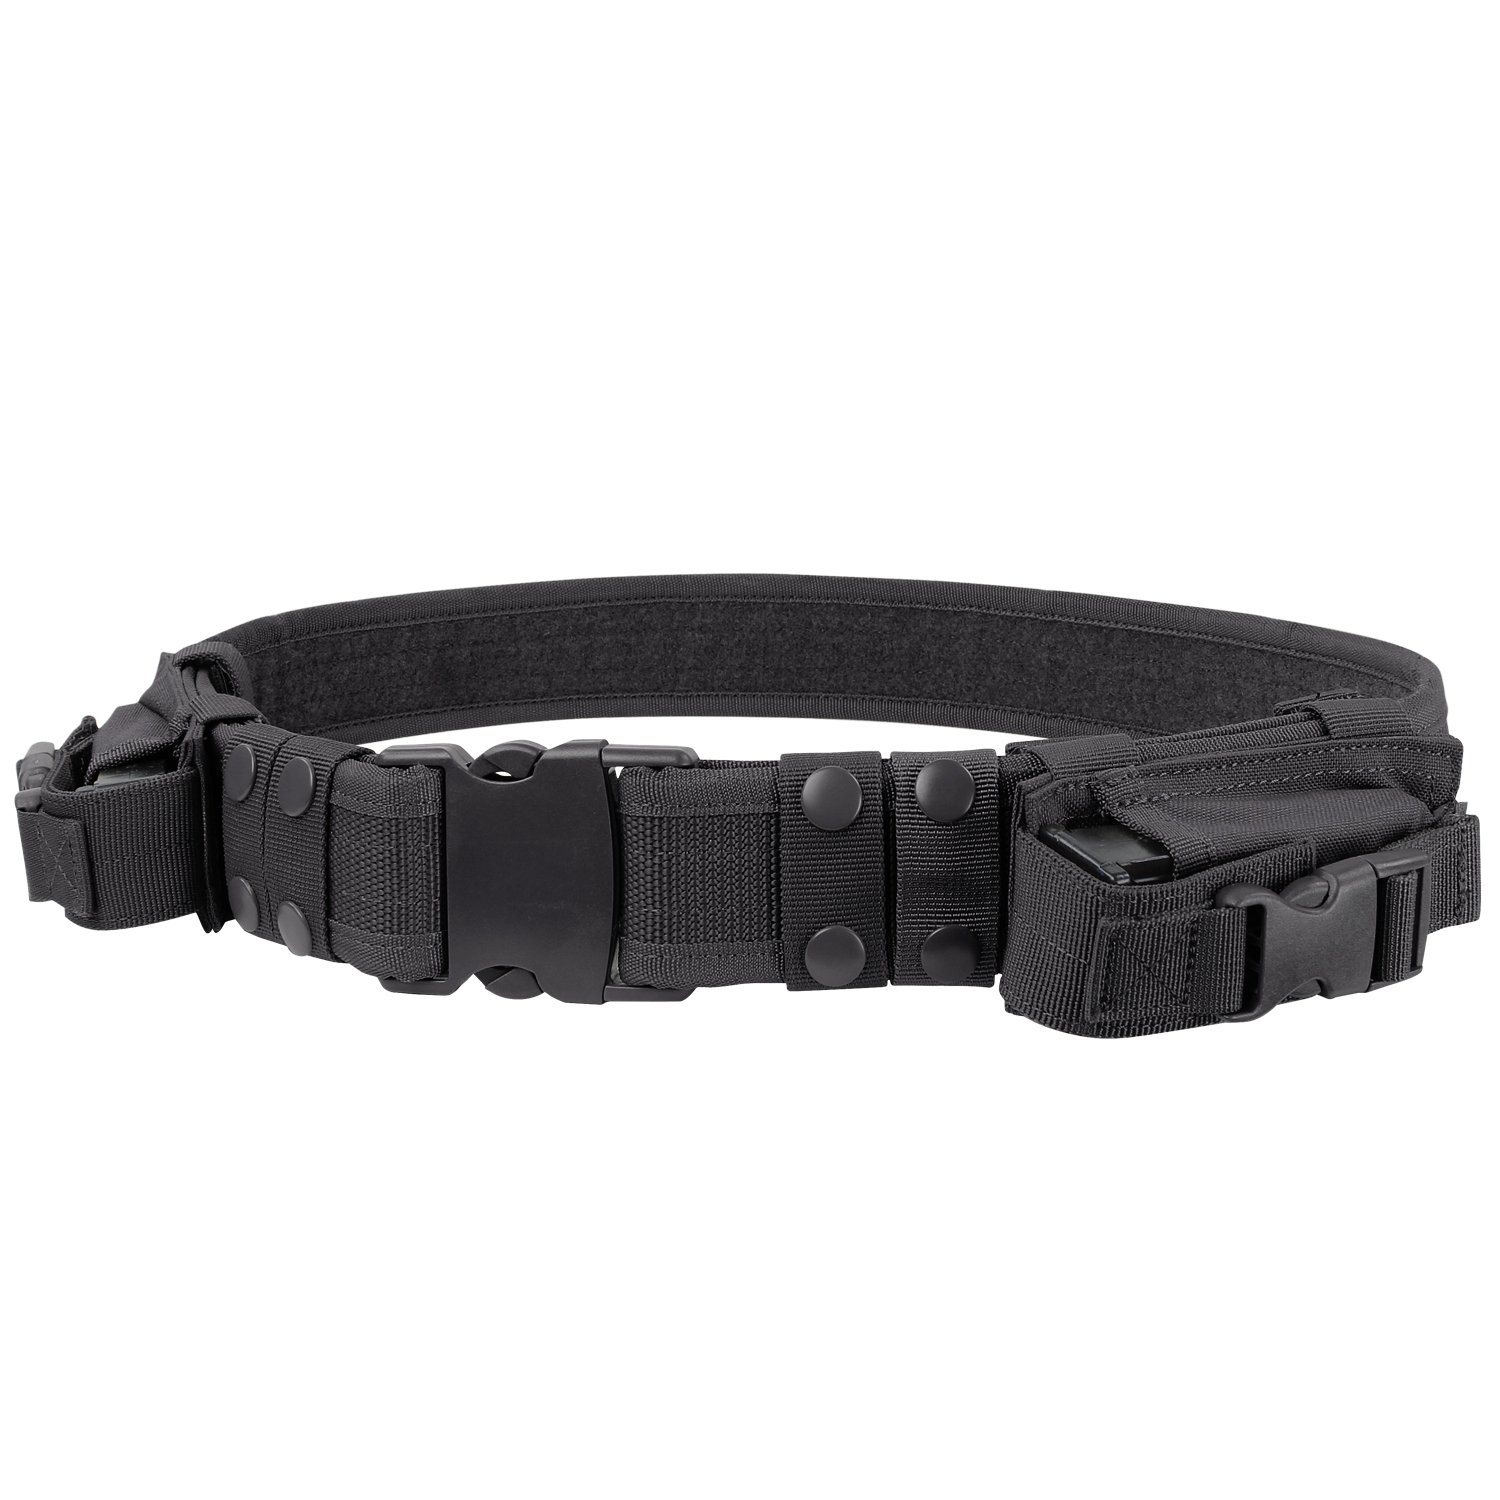 Best Tactical Belts For The Practical Prepper | Backdoor